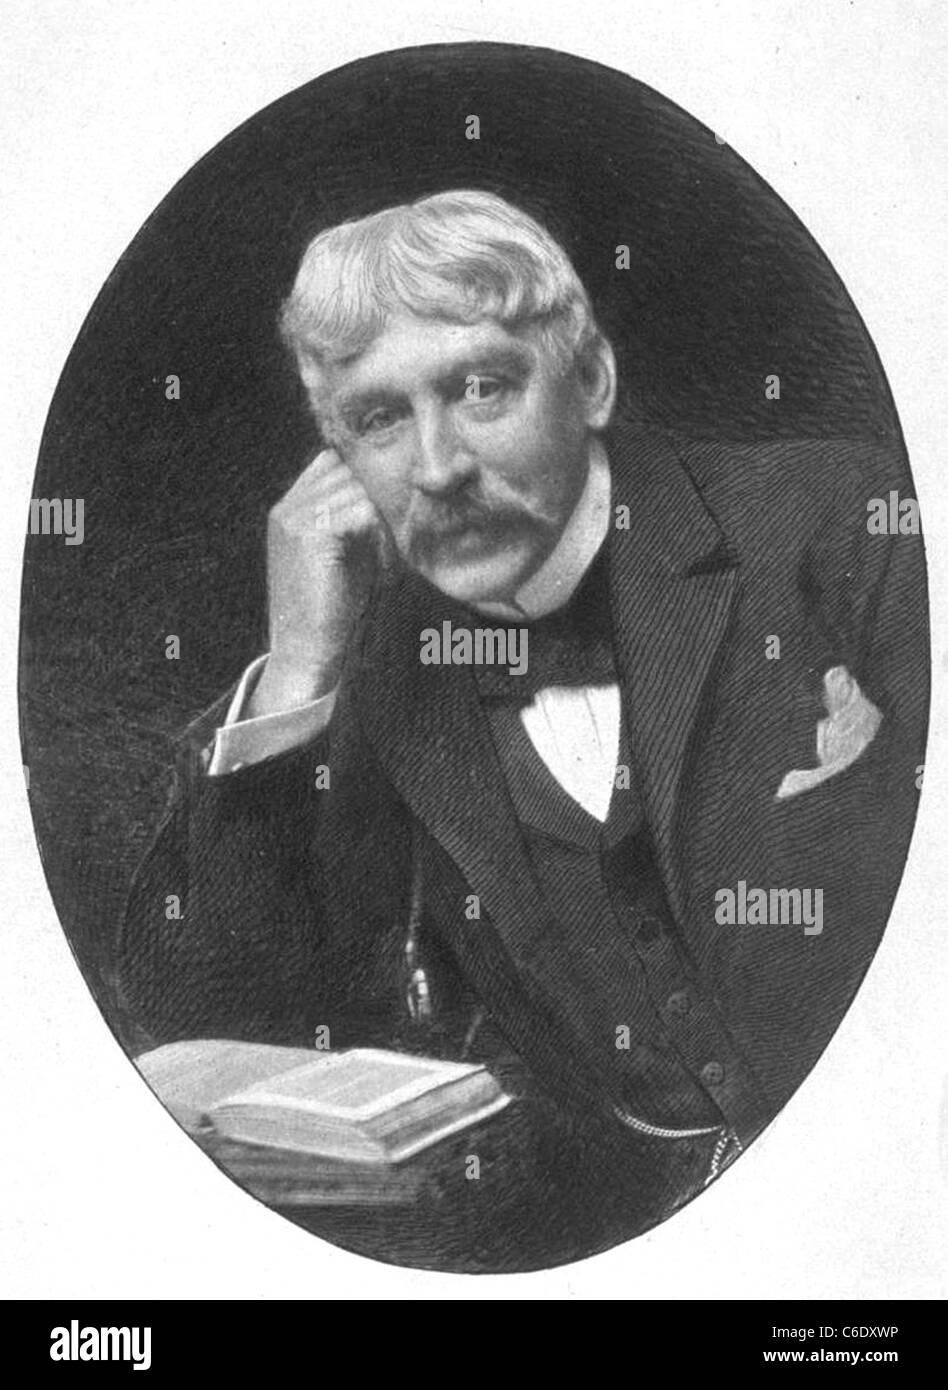 BRET HARTE (1836-1902) US author and poet - Stock Image